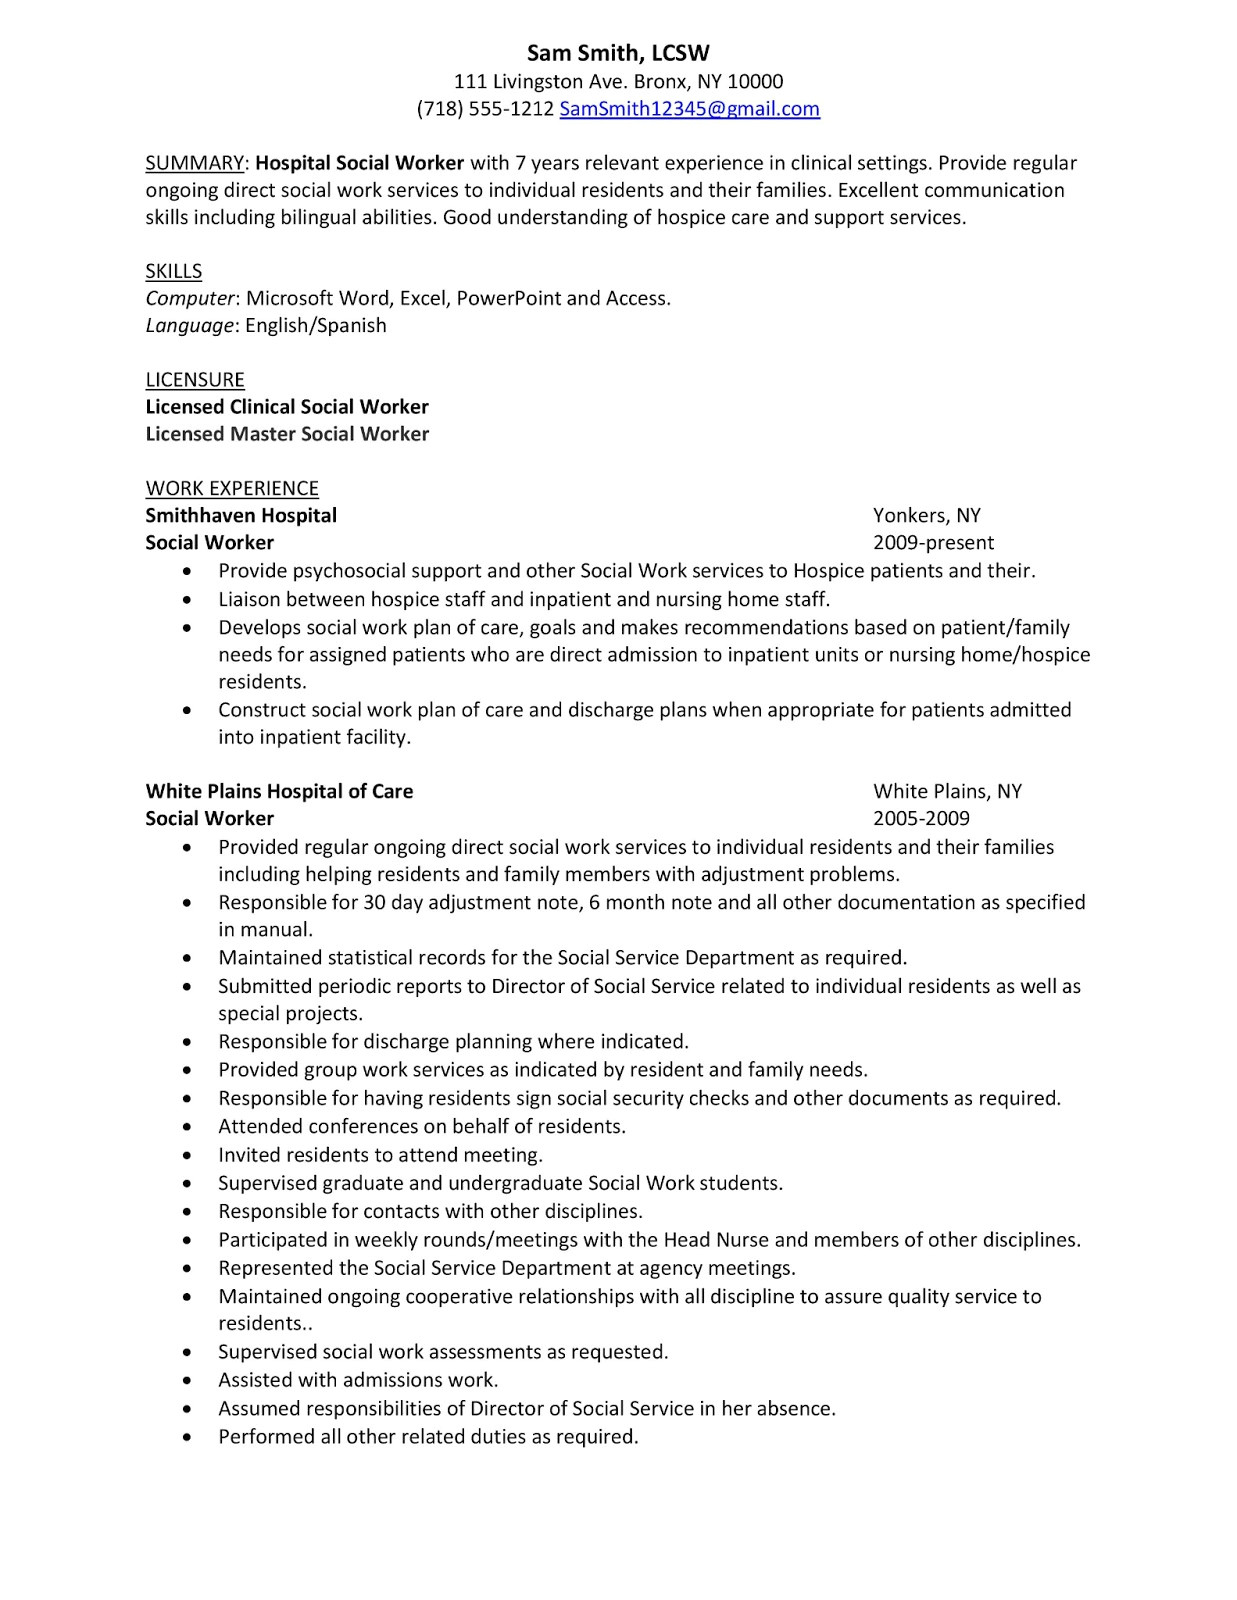 Sample Letter Of Resume to Work Summary Sample Hospital social Work Resume Examples with